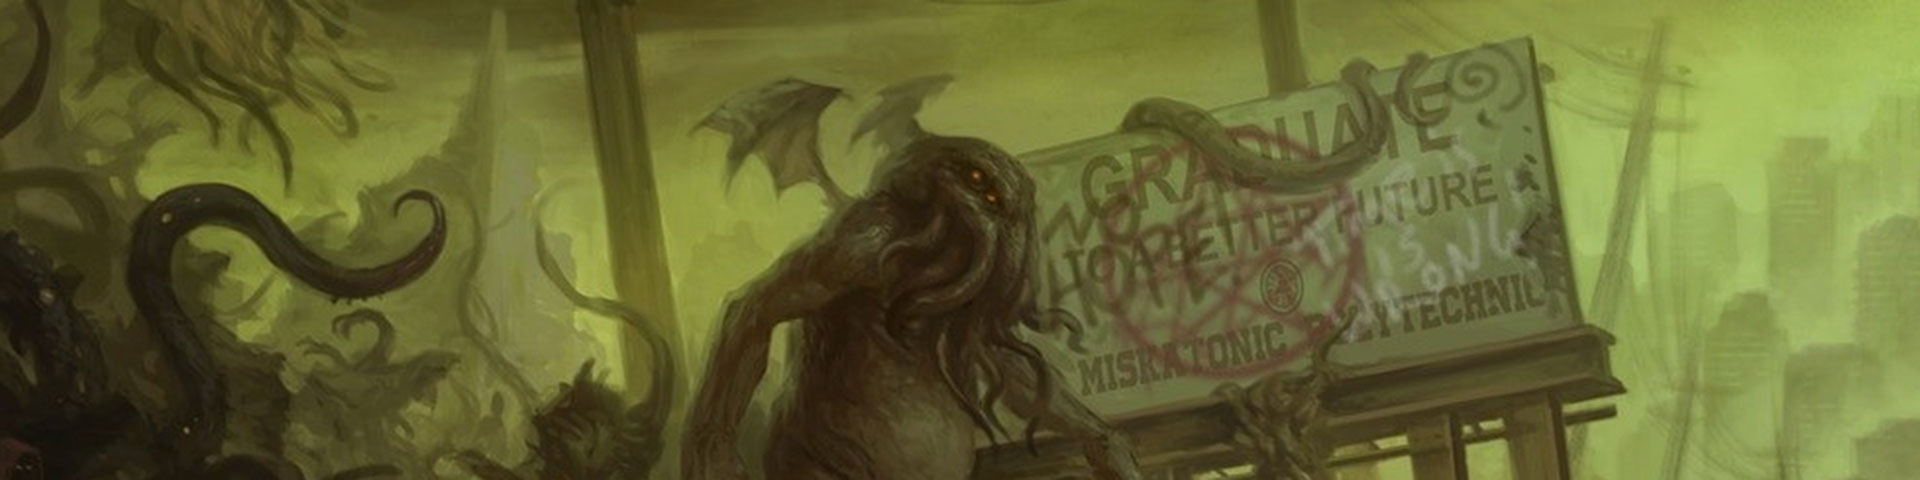 A tentacled humanoid creature with wings on its back stalks across a green-tinged landscape.